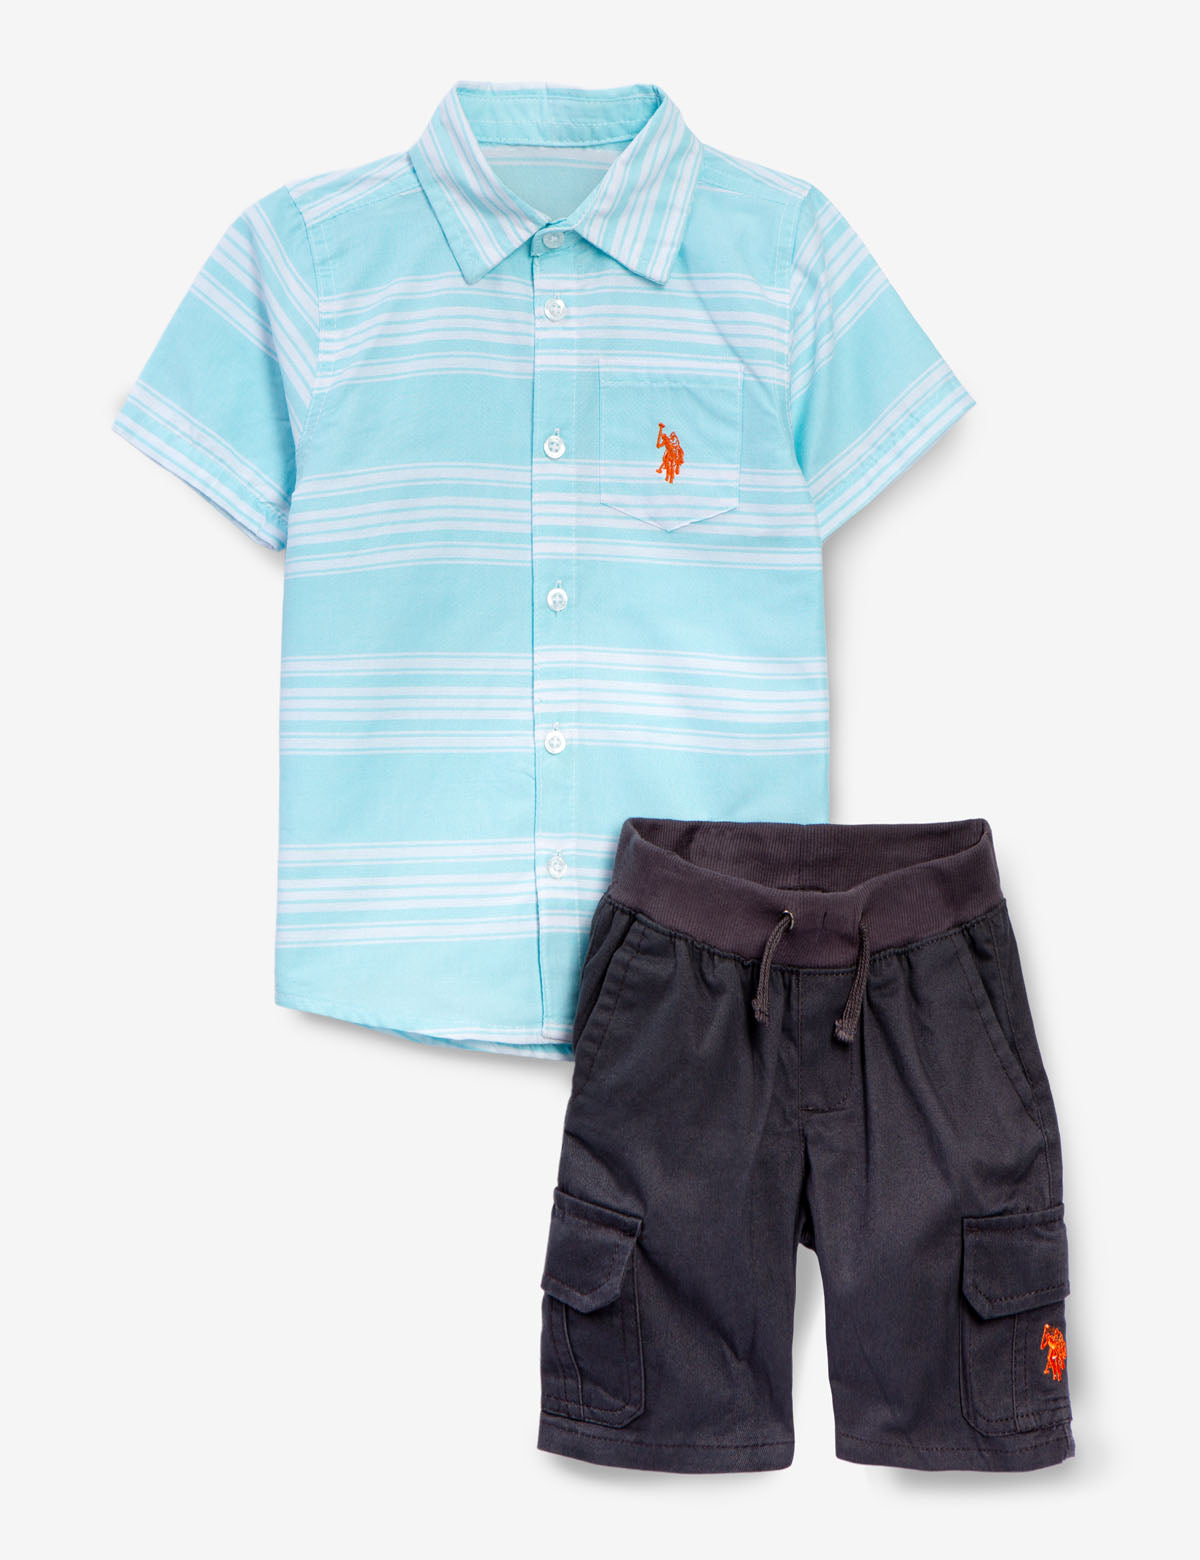 Boys Shorts Polo Assn U.S